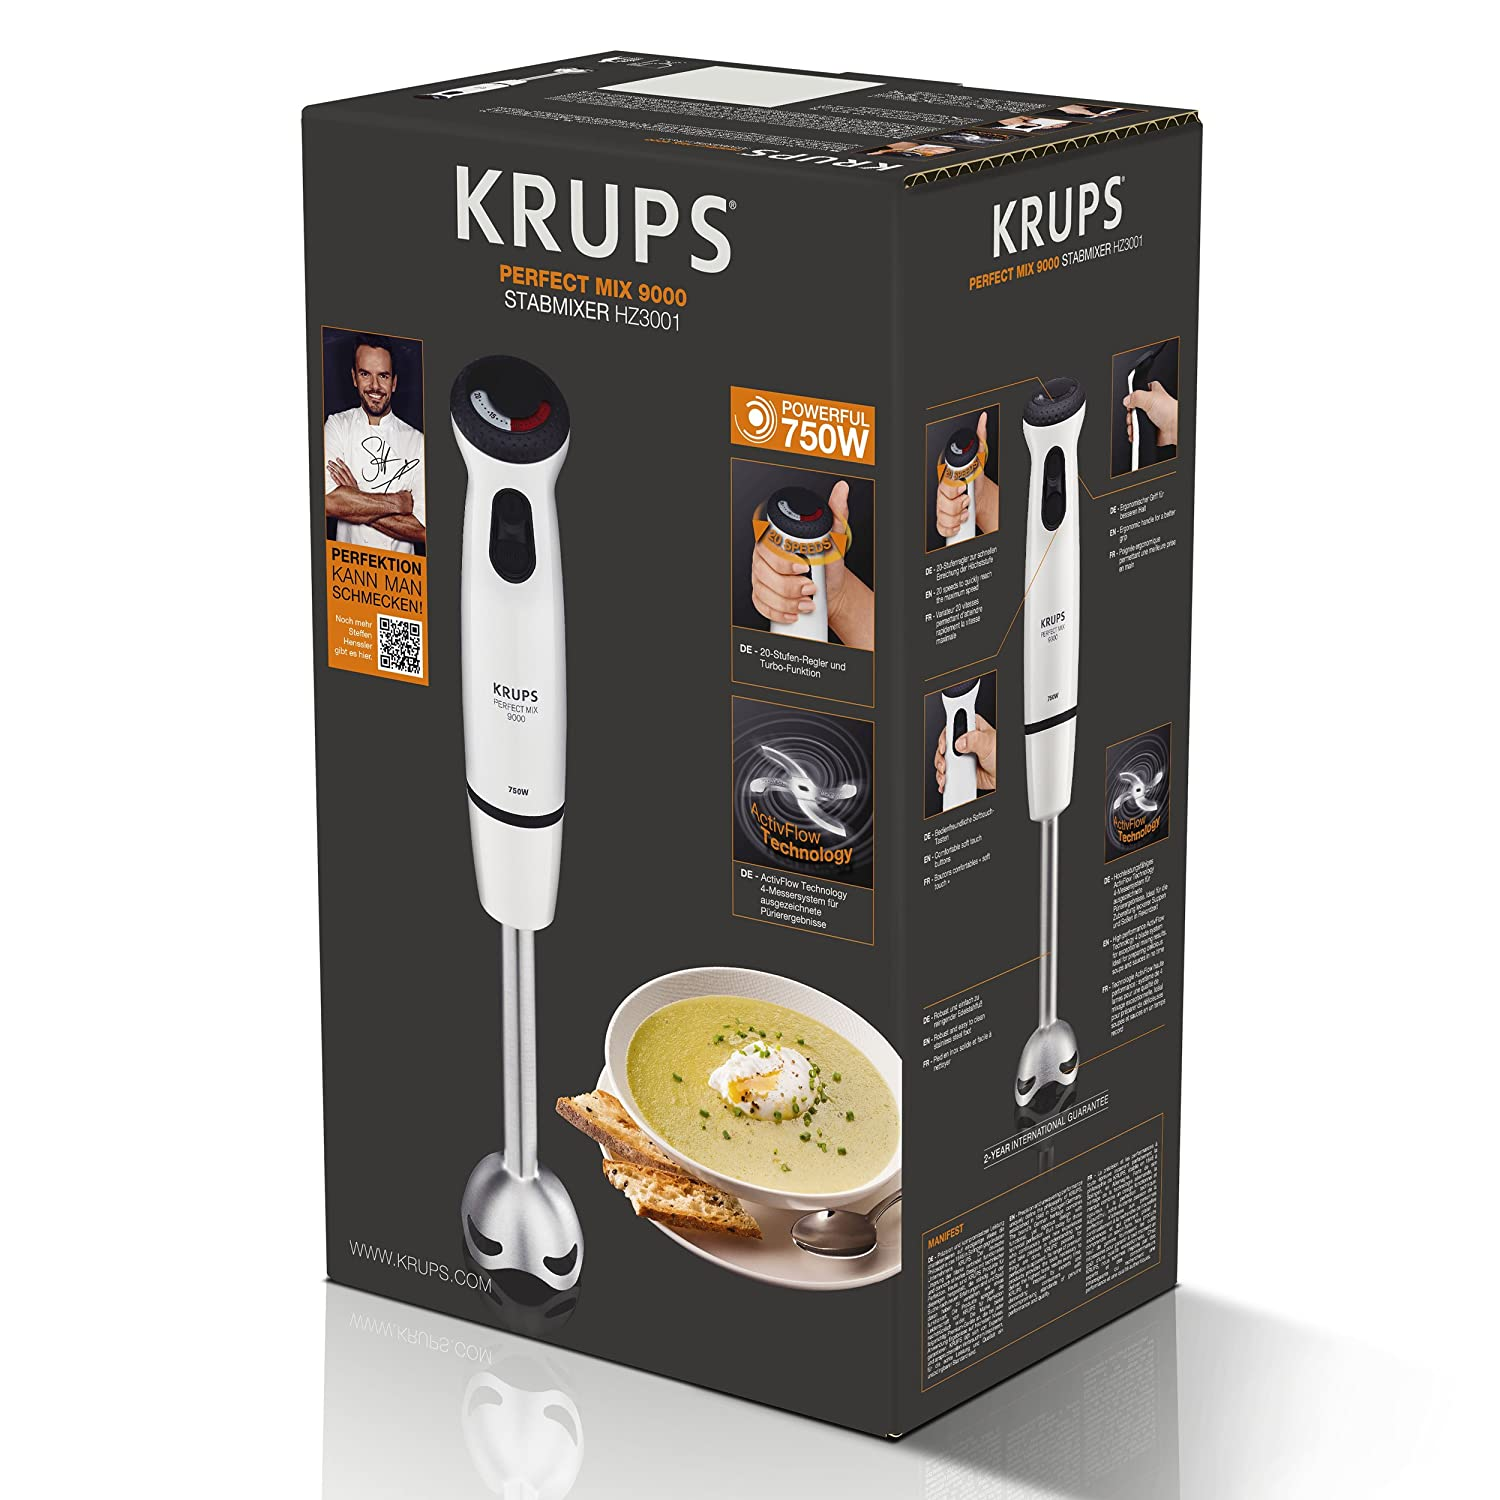 Krups Perfect Mix 9000 Hand mixer Gris, Color blanco 0.8L 750W - Licuadora (Acero inoxidable): Amazon.es: Hogar